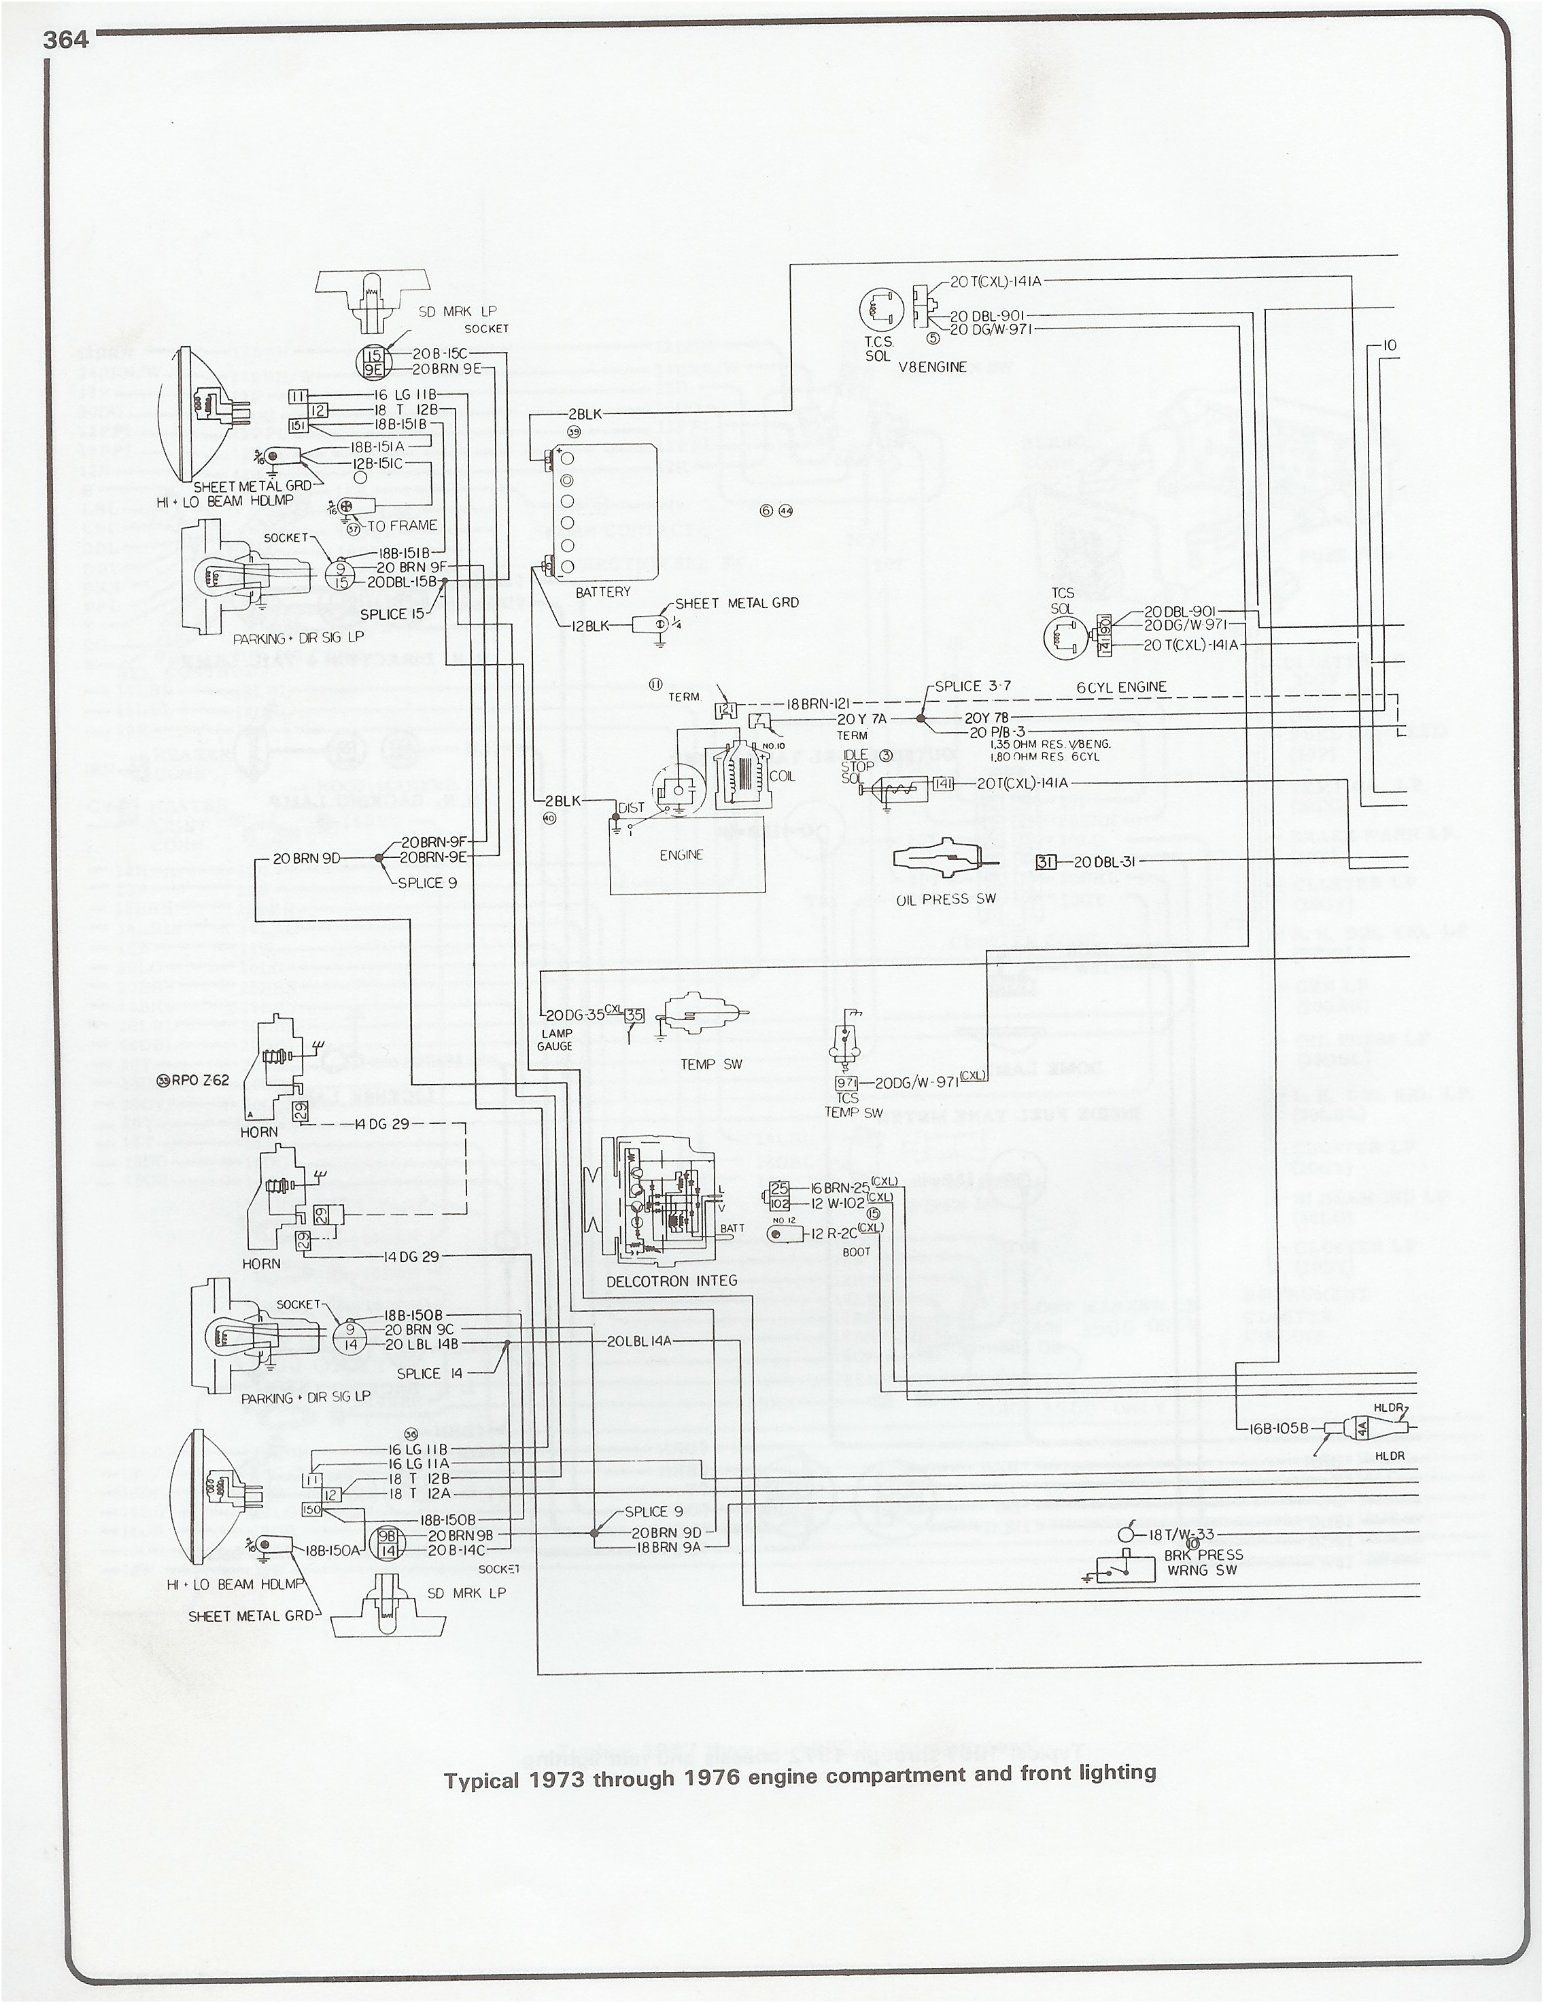 b46c0c014ab7ae7becc2b916945faf15 wiring diagram 1973 1976 chevy pickup chevy wiring diagram 1976 camaro wiring diagram at panicattacktreatment.co